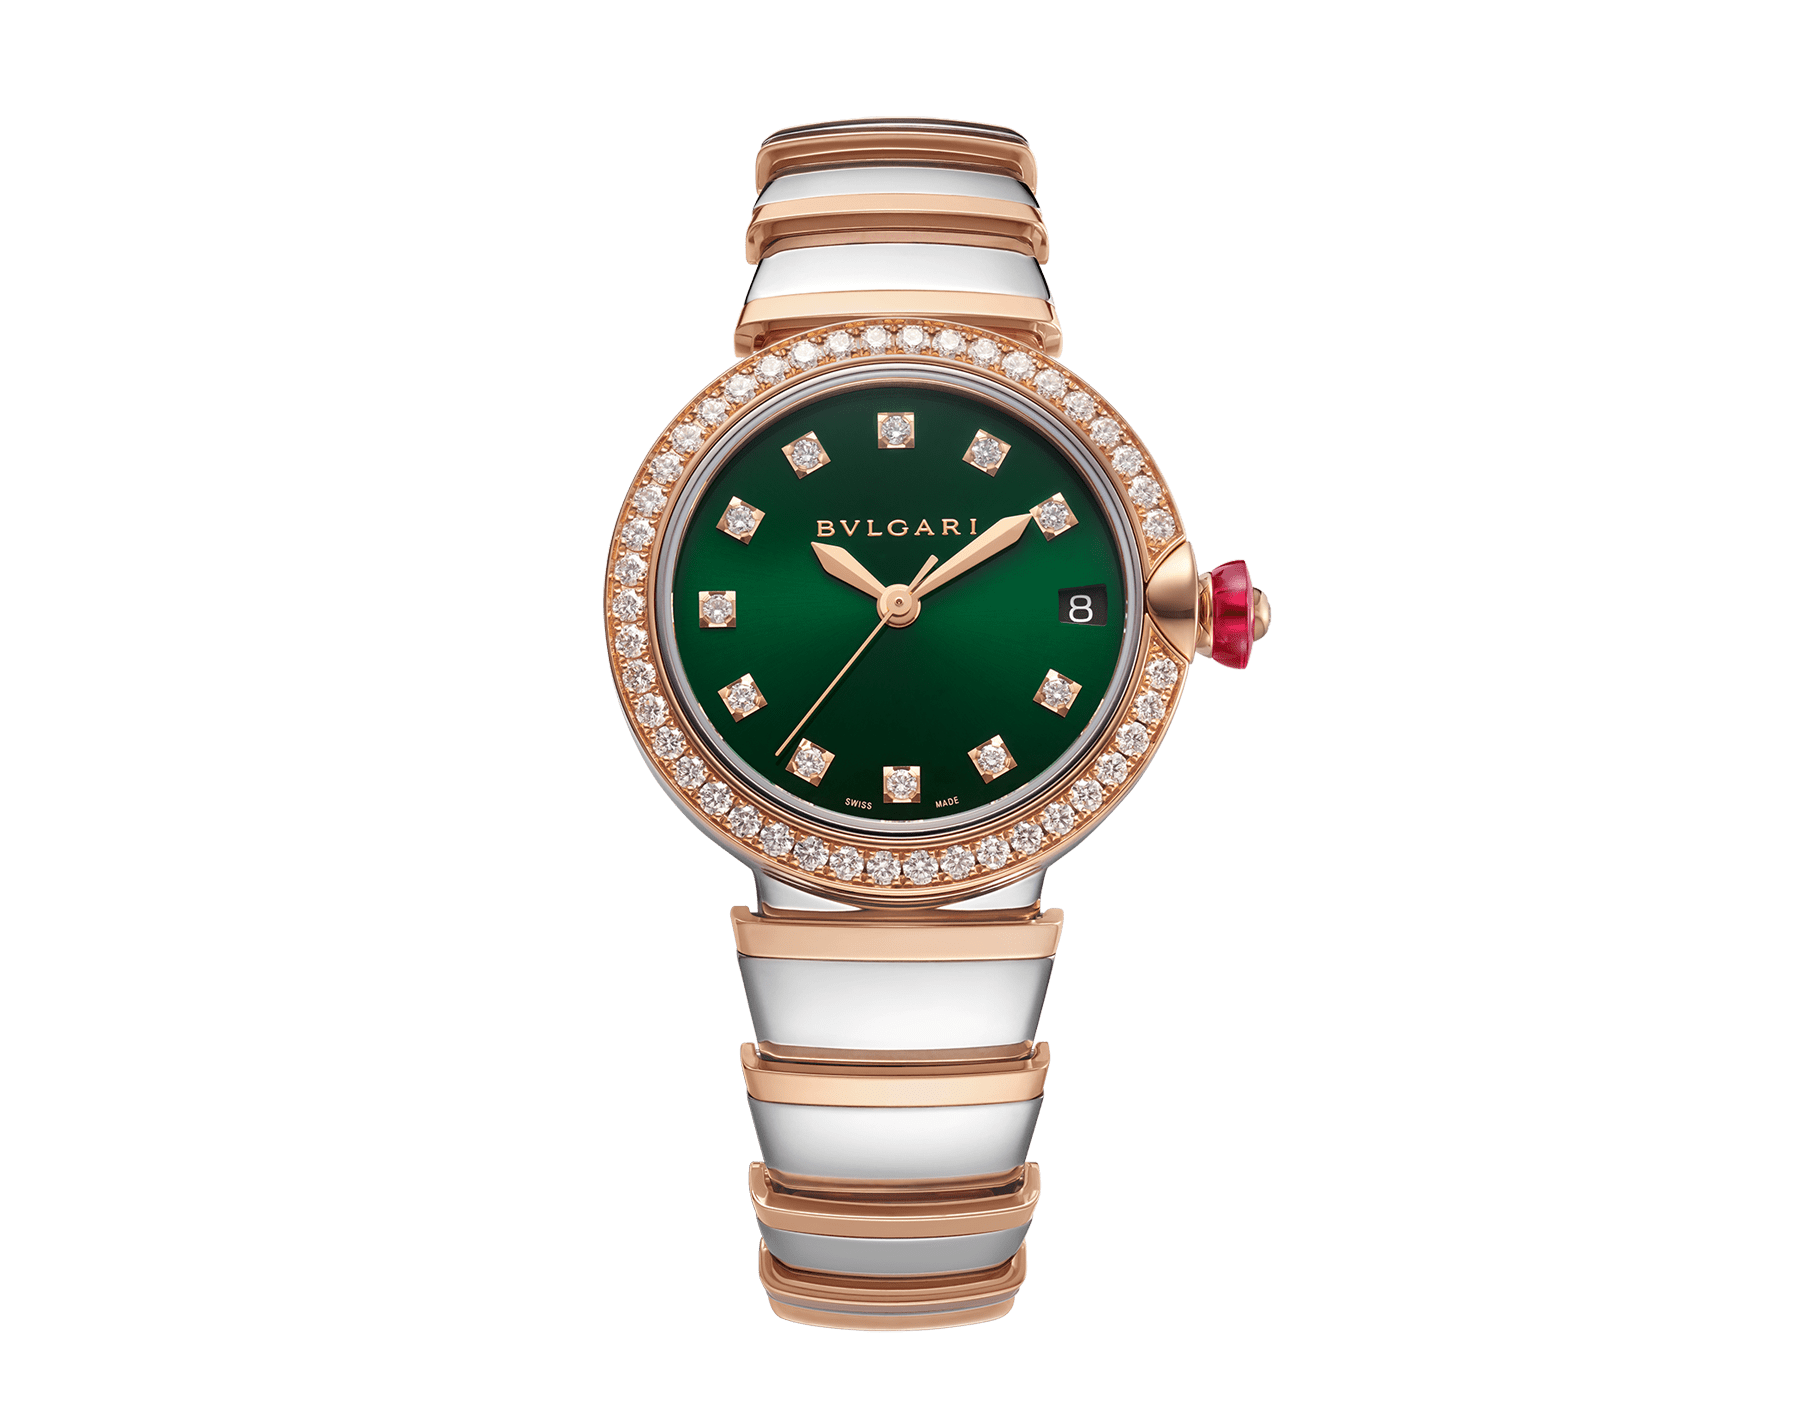 LVCEA watch with stainless steel case, 18 kt rose gold bezel set with brilliant-cut diamonds, green dial, diamond indexes, date opening, stainless steel and 18 kt rose gold bracelet. Exclusive Edition for Middle East 103289 image 1